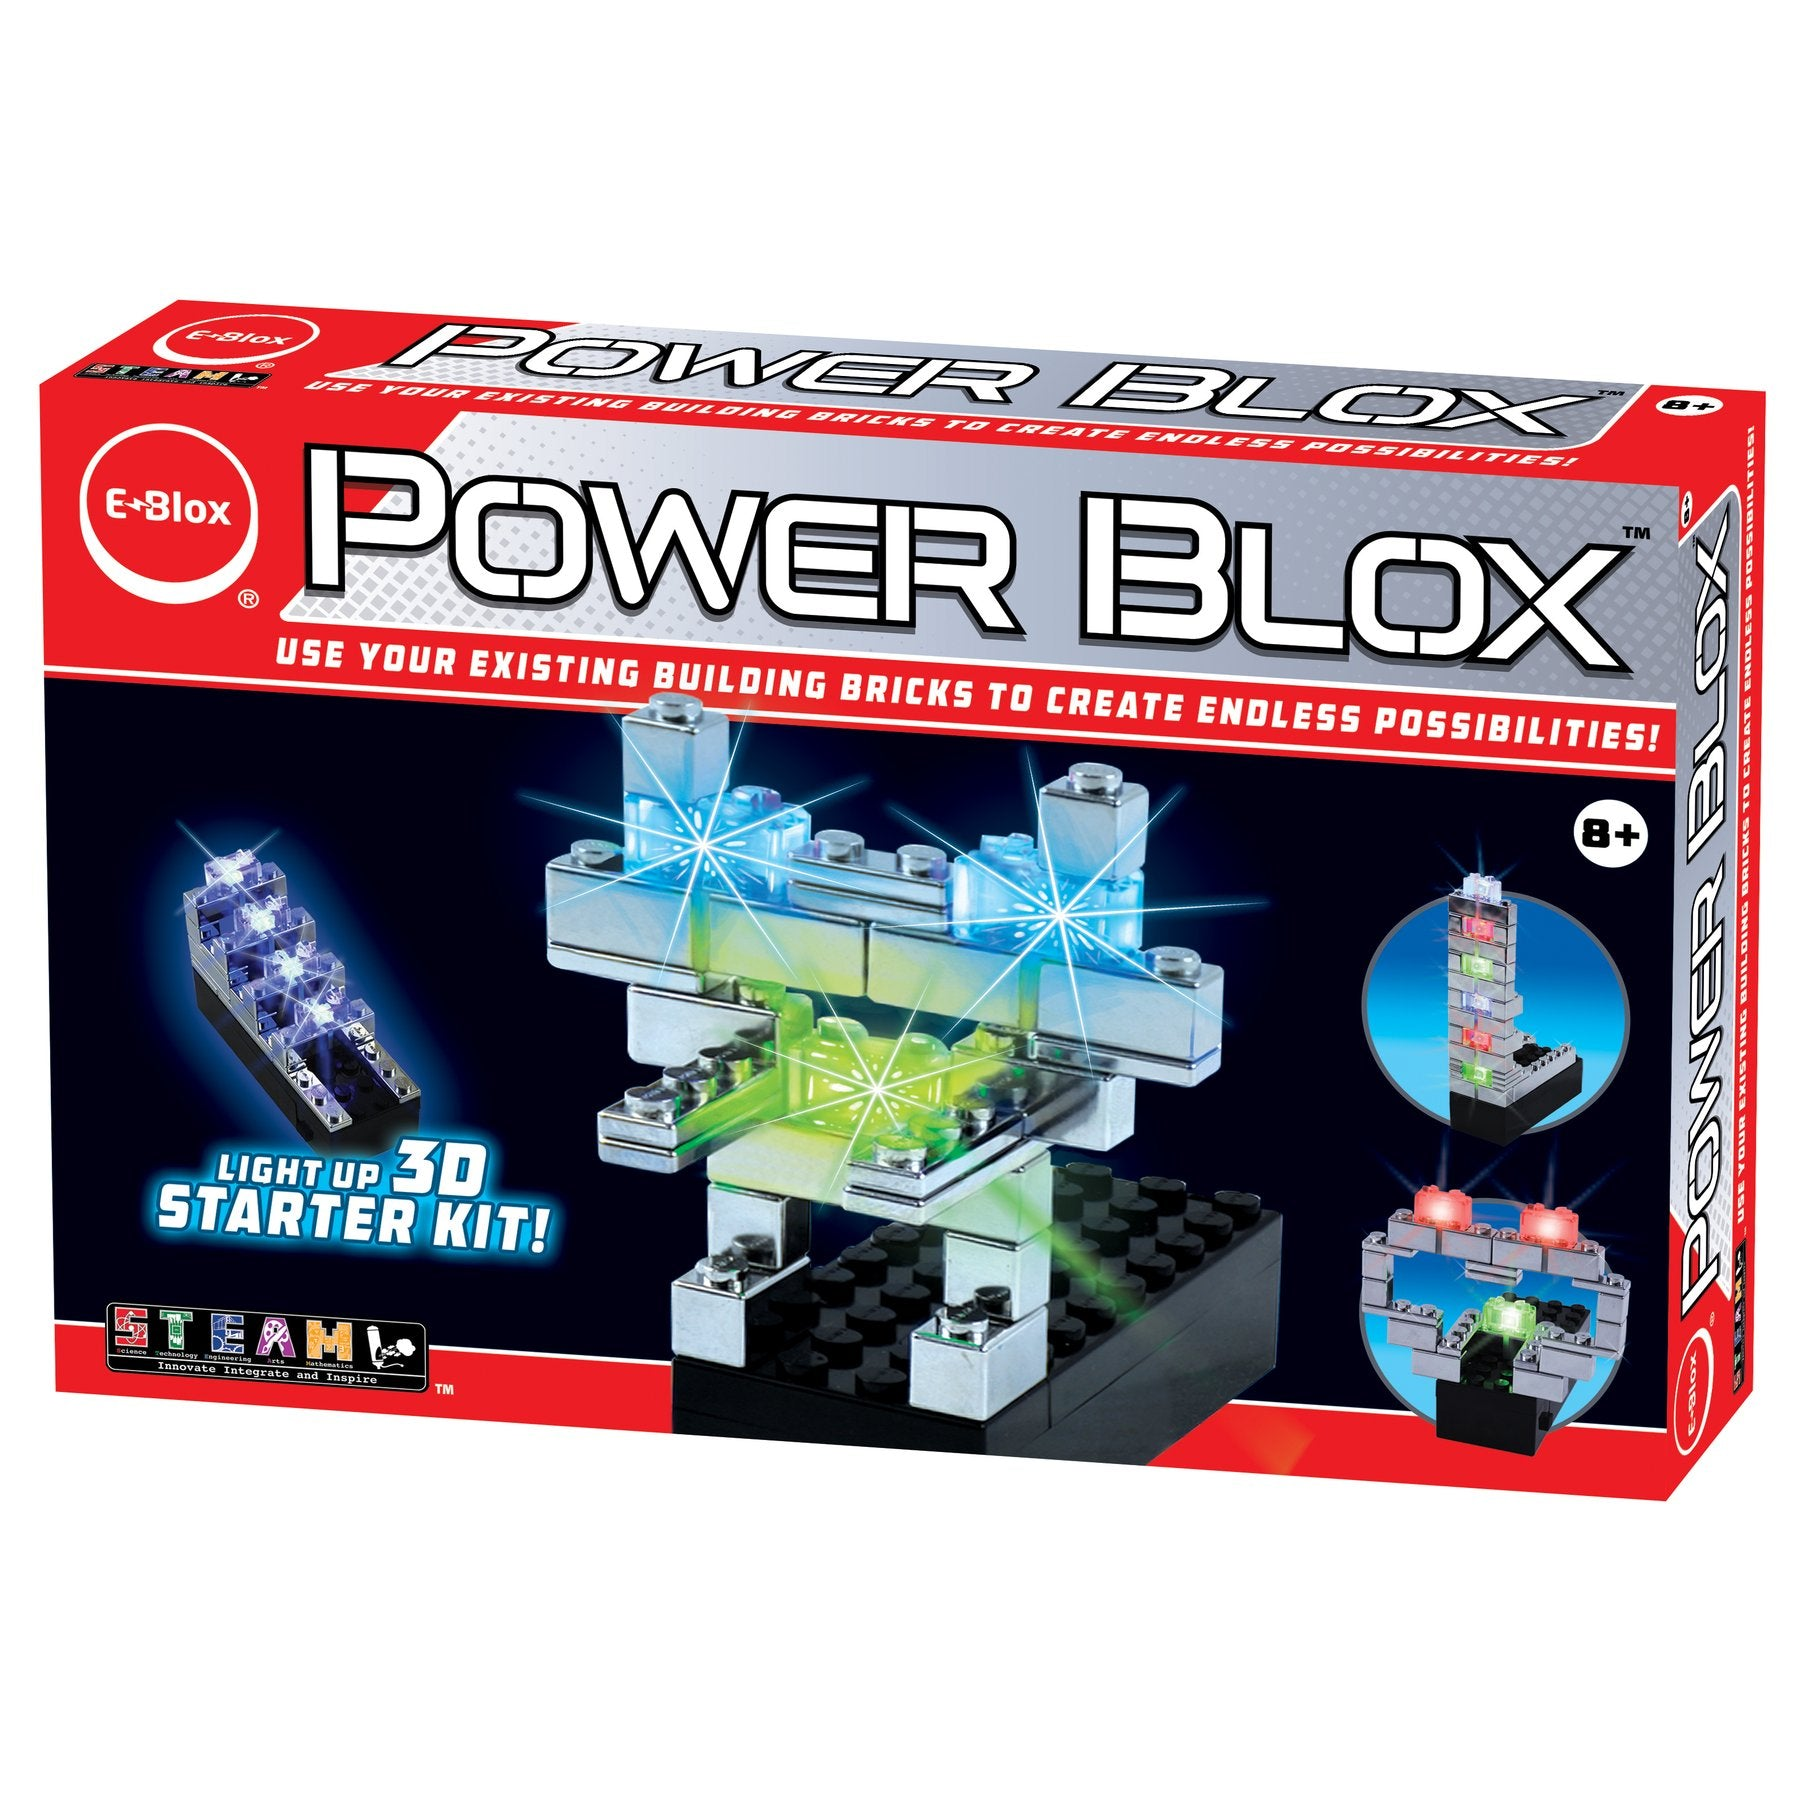 Power Blox Starter LED Building Blocks Set - E-Blox